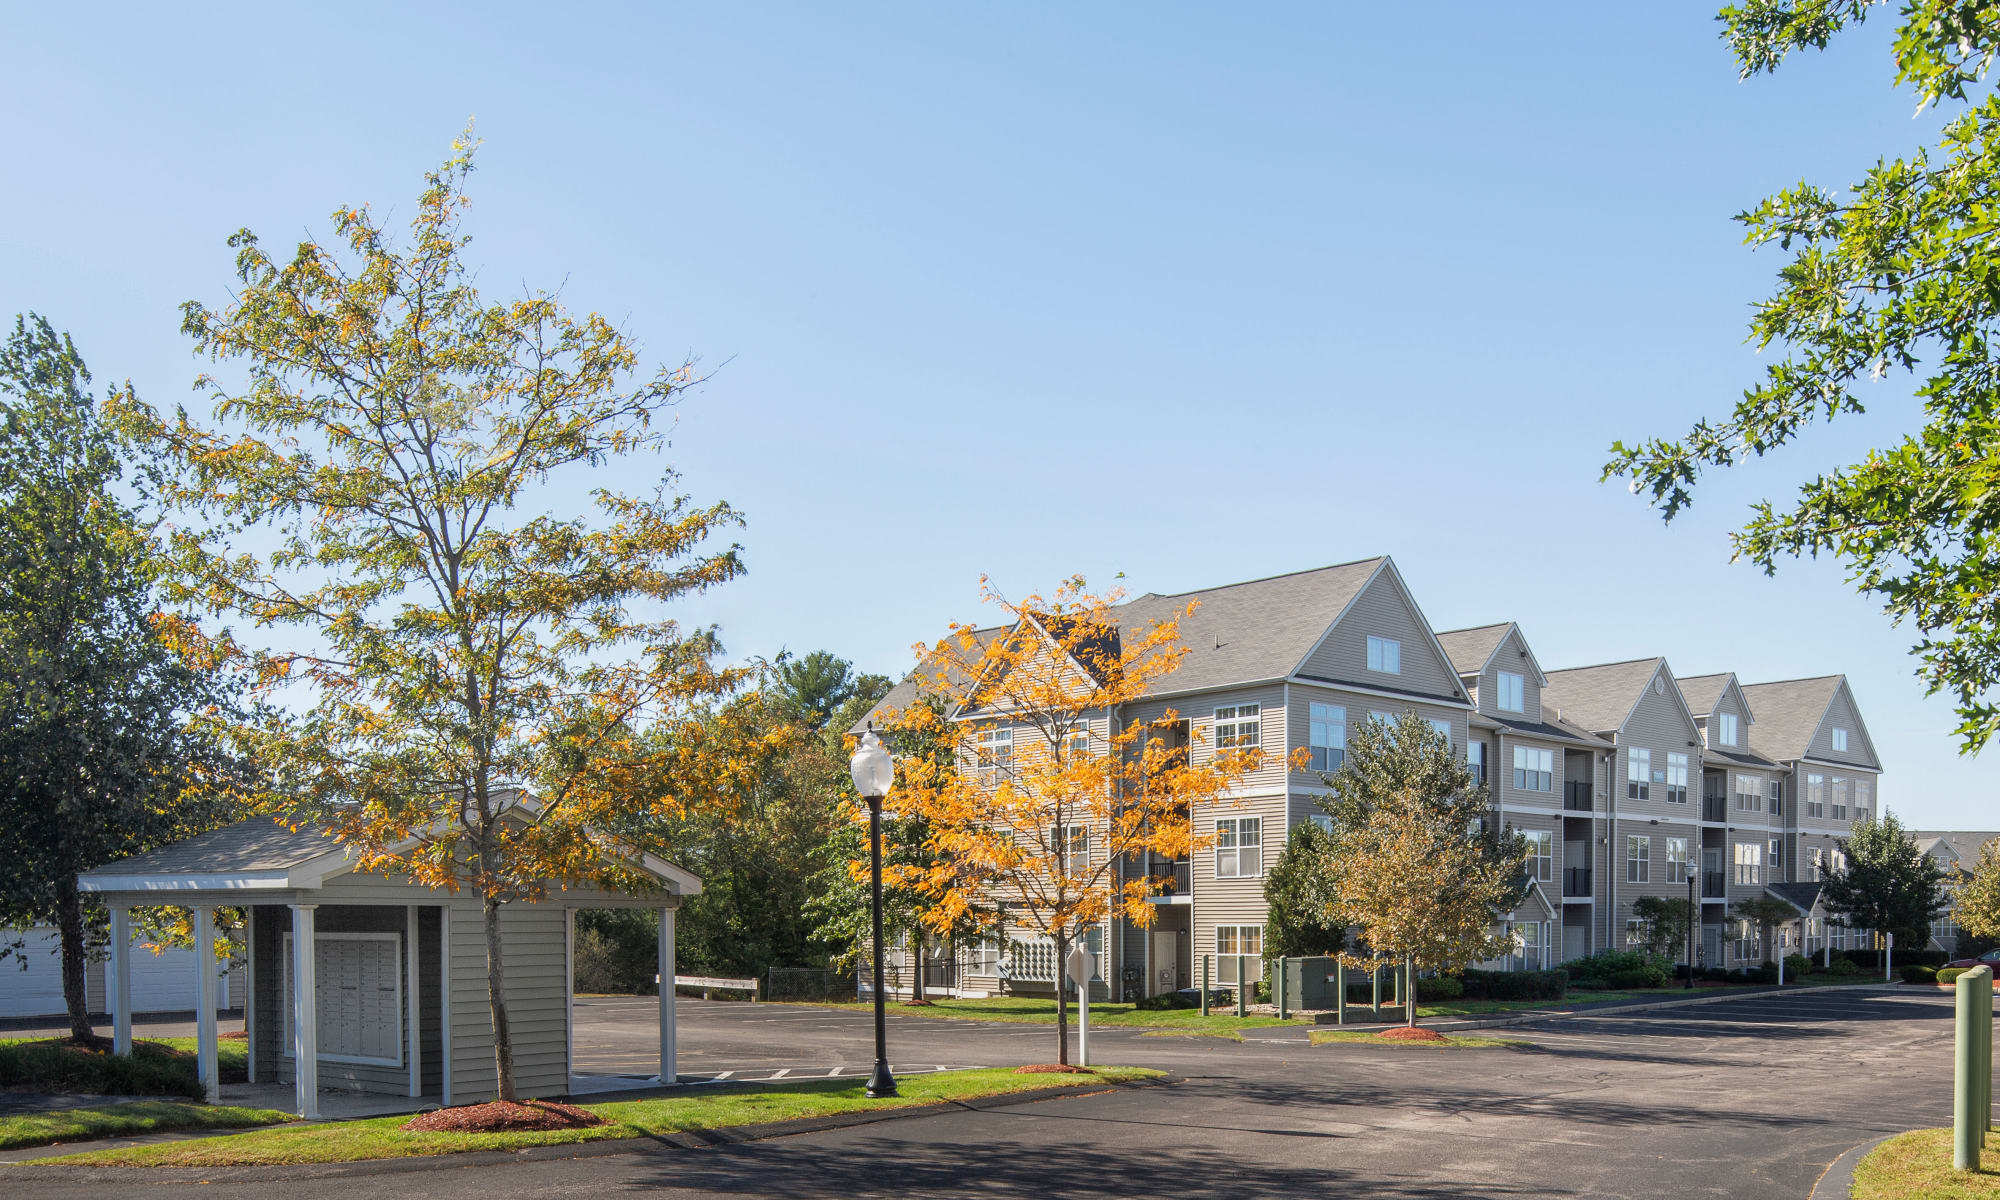 Canton apartments townhomes and lofts for rent prynne hills - 3 bedroom apartments in randolph ma ...